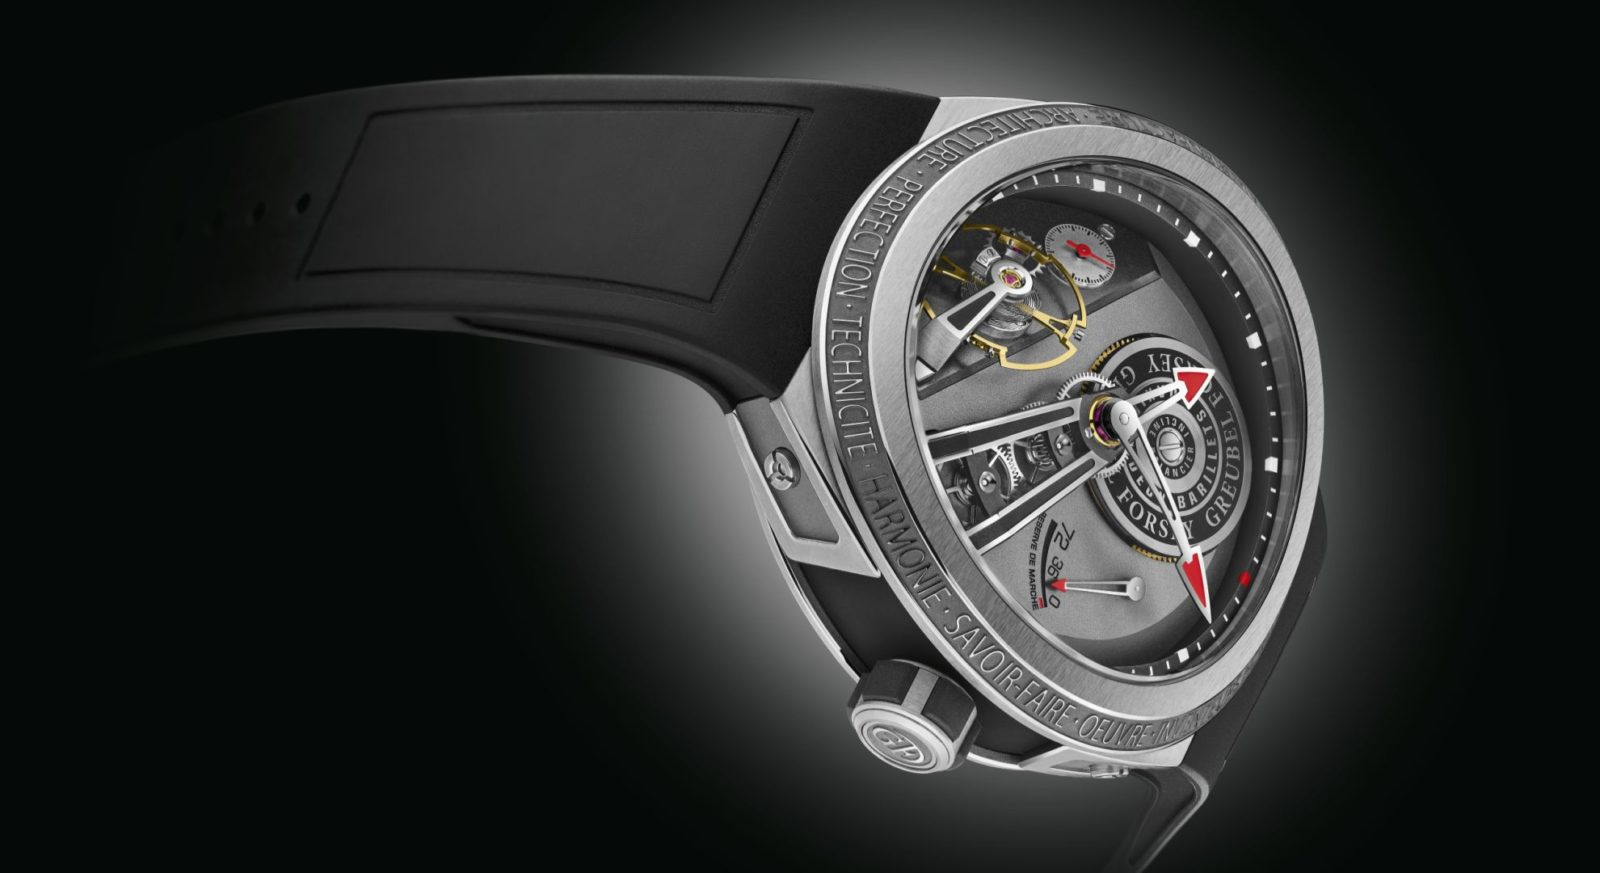 The Greubel Forsey Balancier S is a robust timepiece forged from titanium